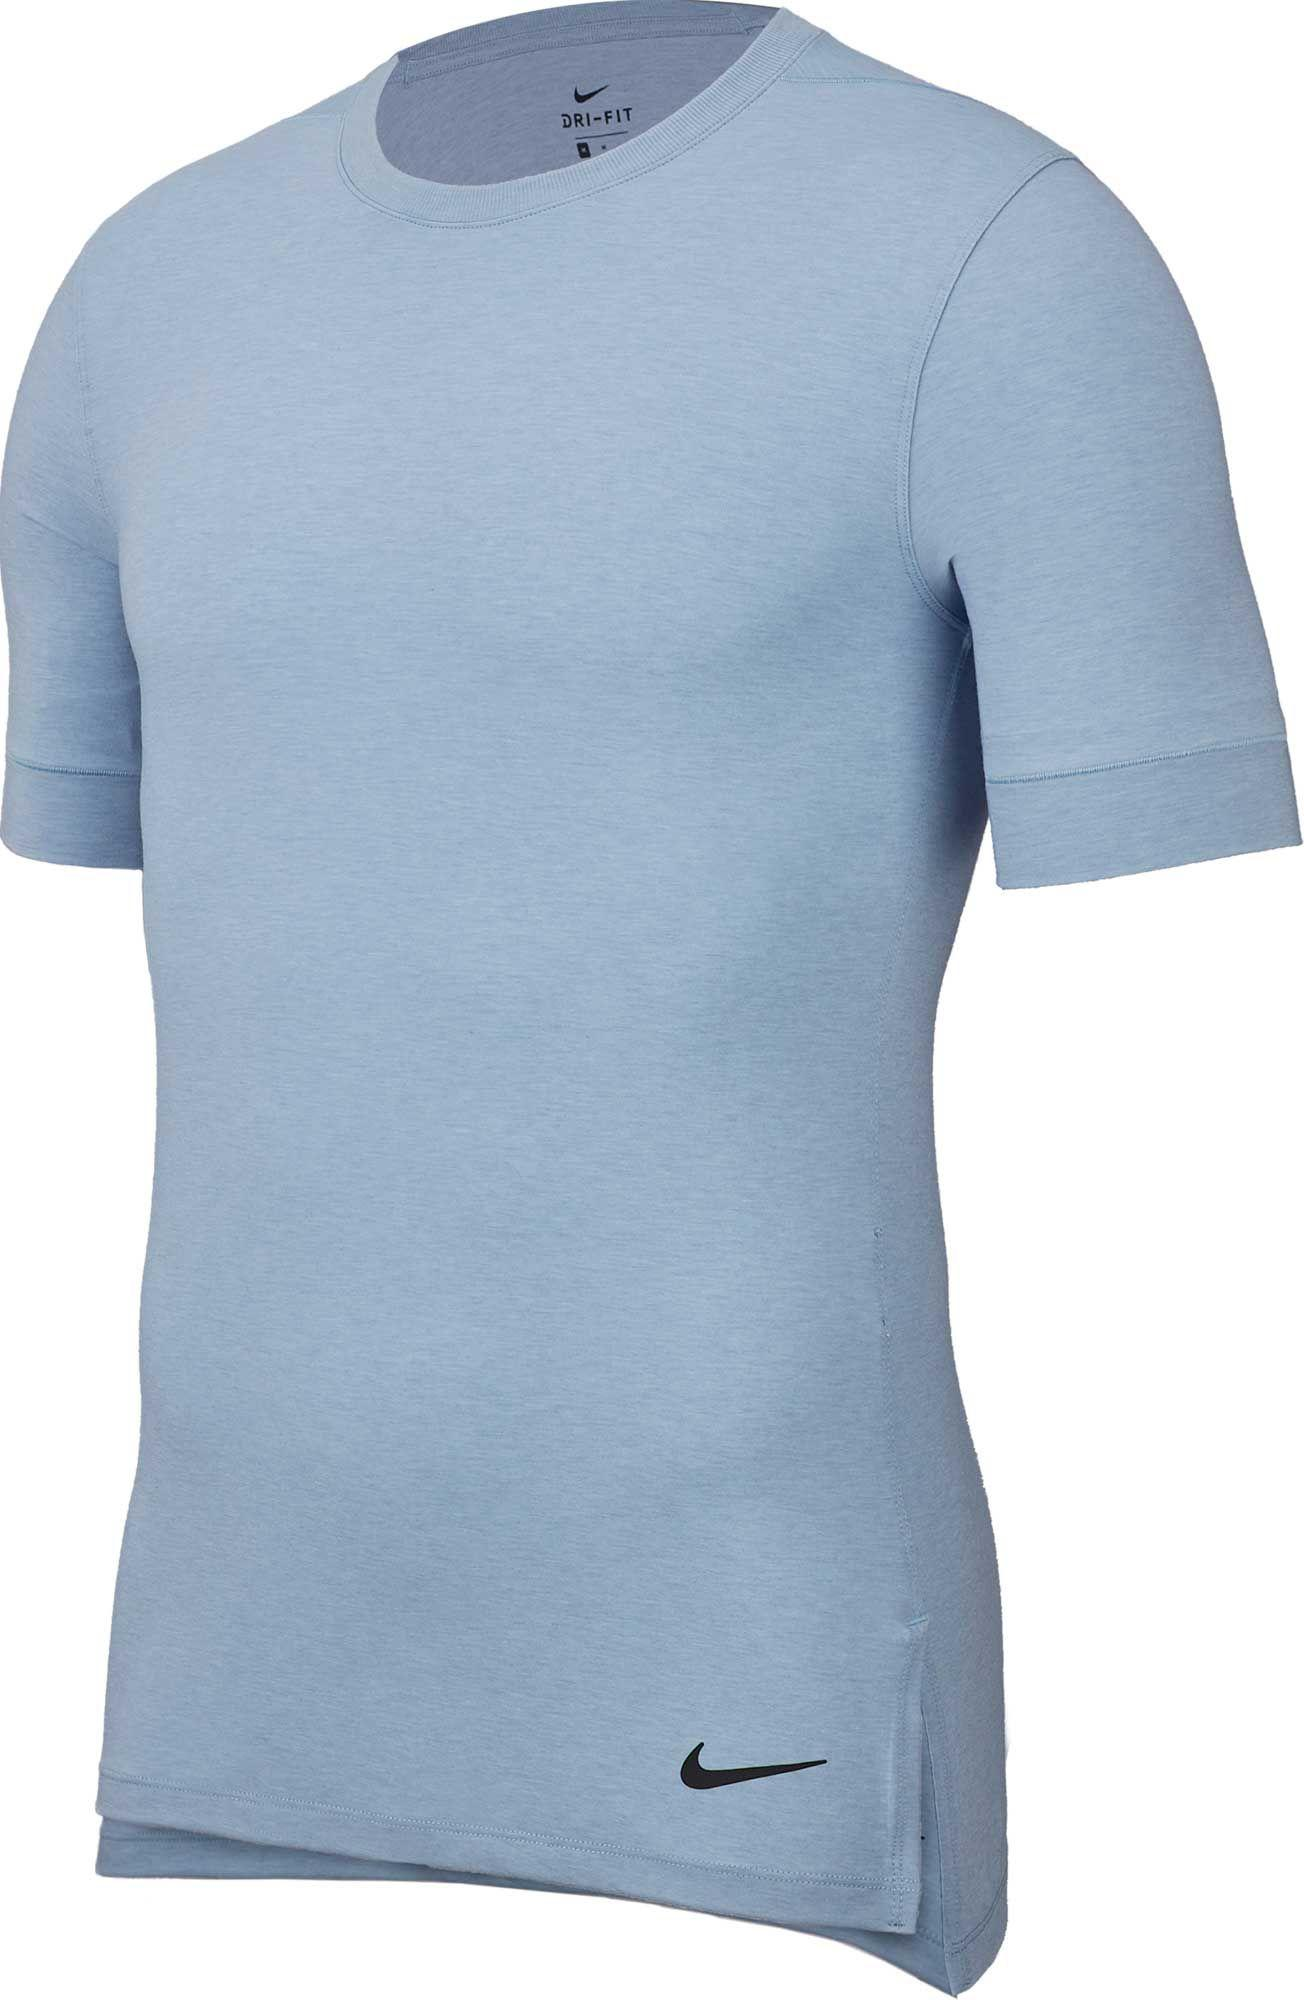 d2cc31c5ac0 Lyst - Nike Dry Transcend Training Tee in Blue for Men